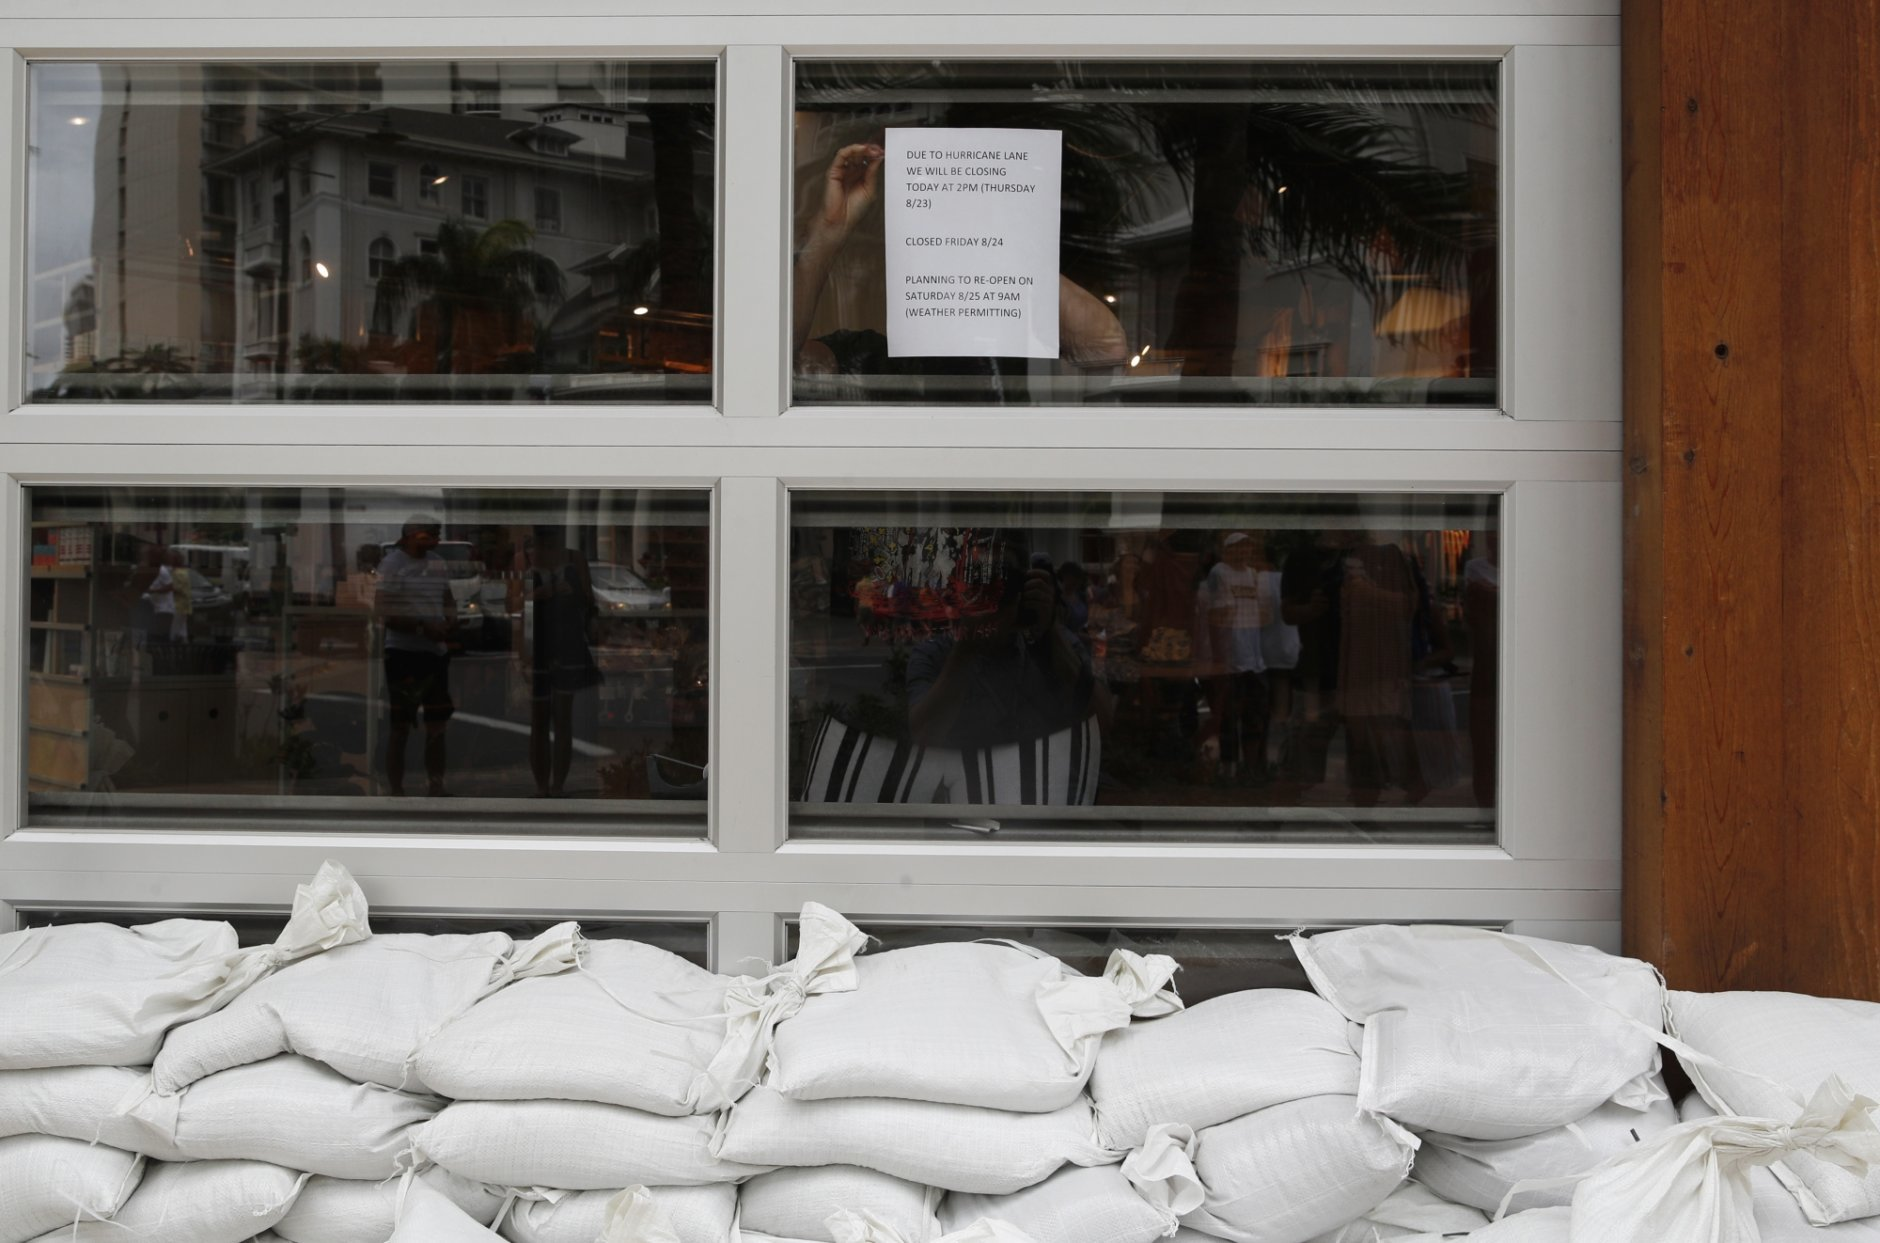 A woman tapes up a sign letting people know a store with stacked sandbags will close soon in preparation for Hurricane Lane, Thursday, Aug. 23, 2018, in Honolulu. (AP Photo/John Locher)